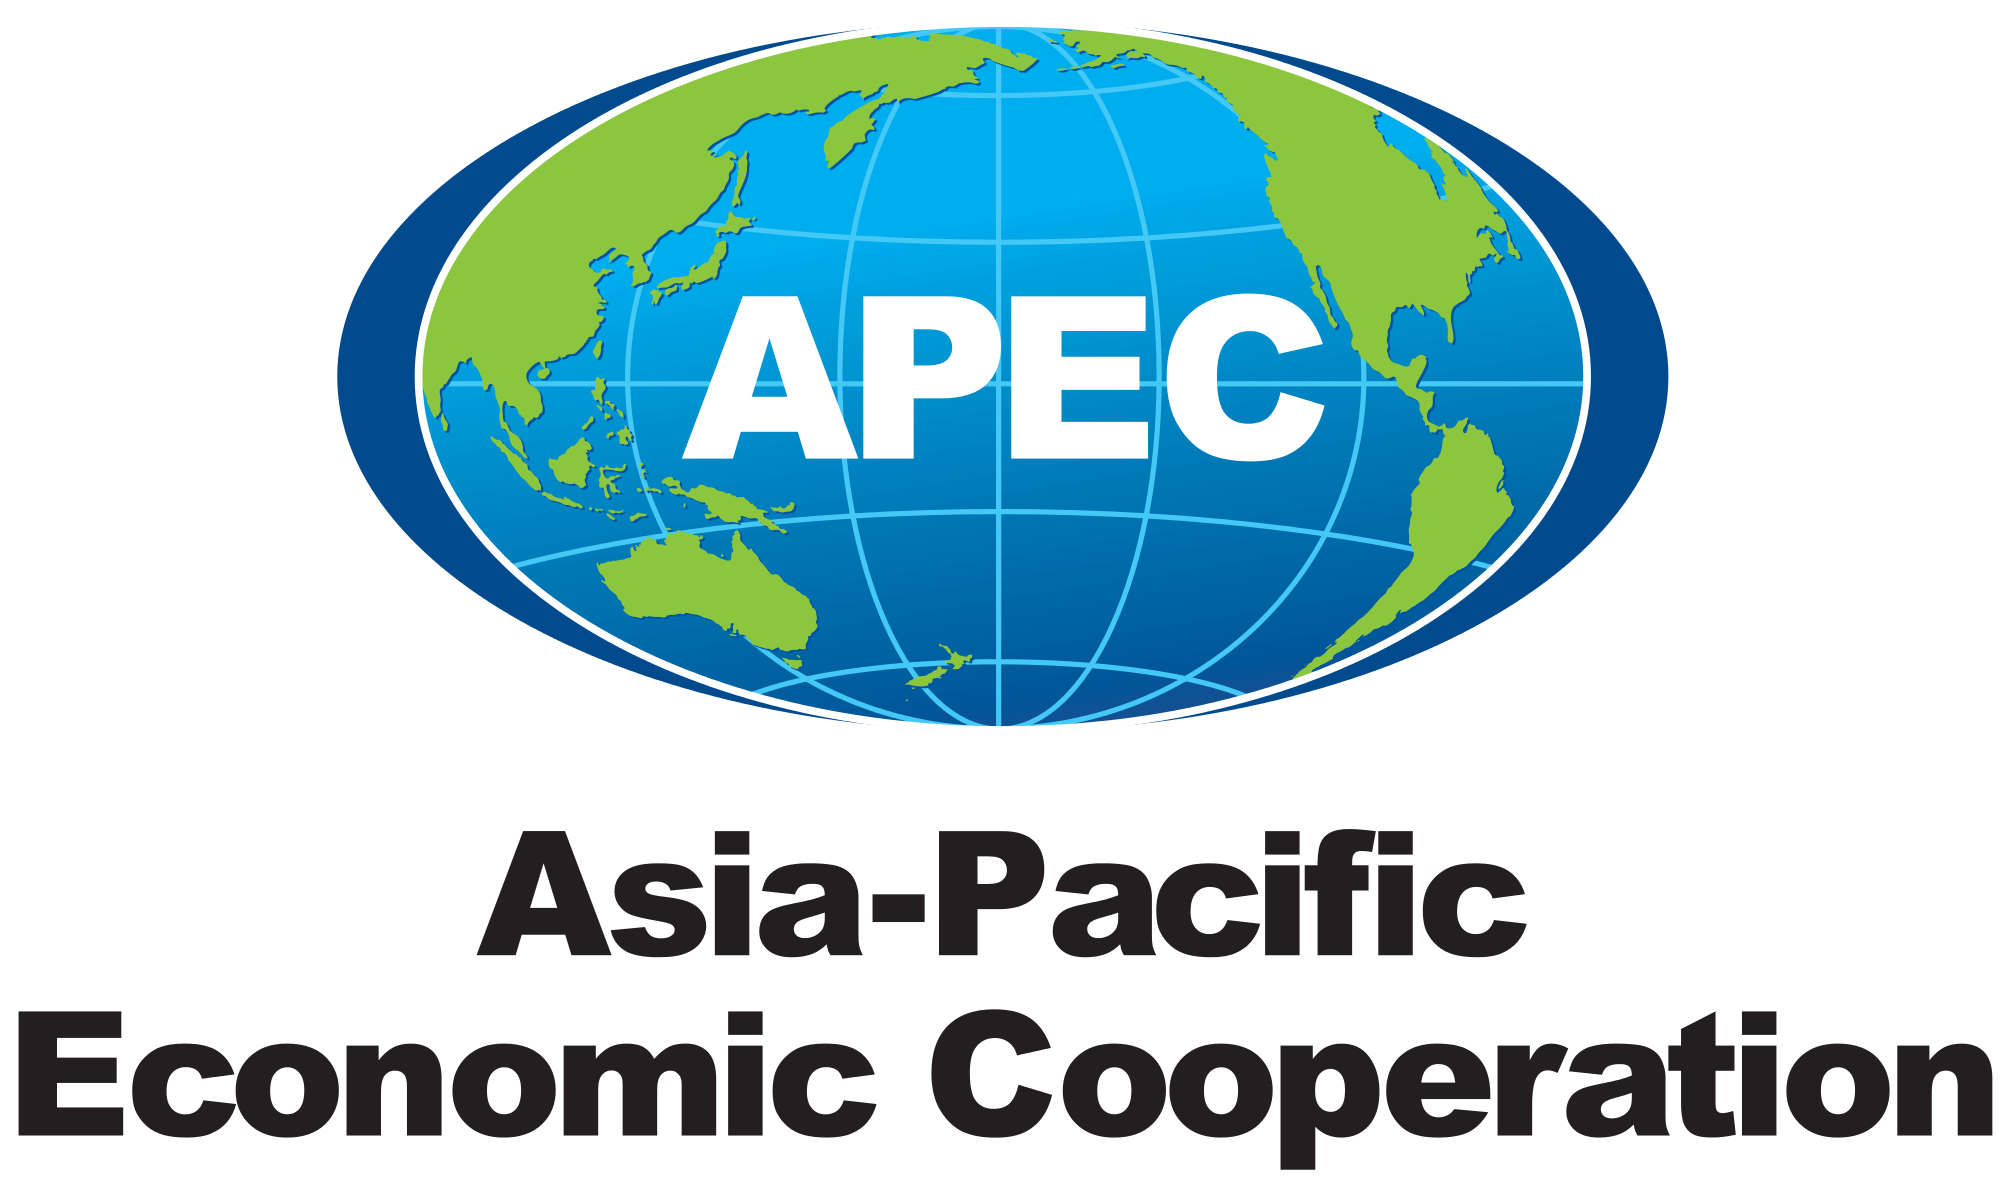 Asia vector business. Apec travel card what